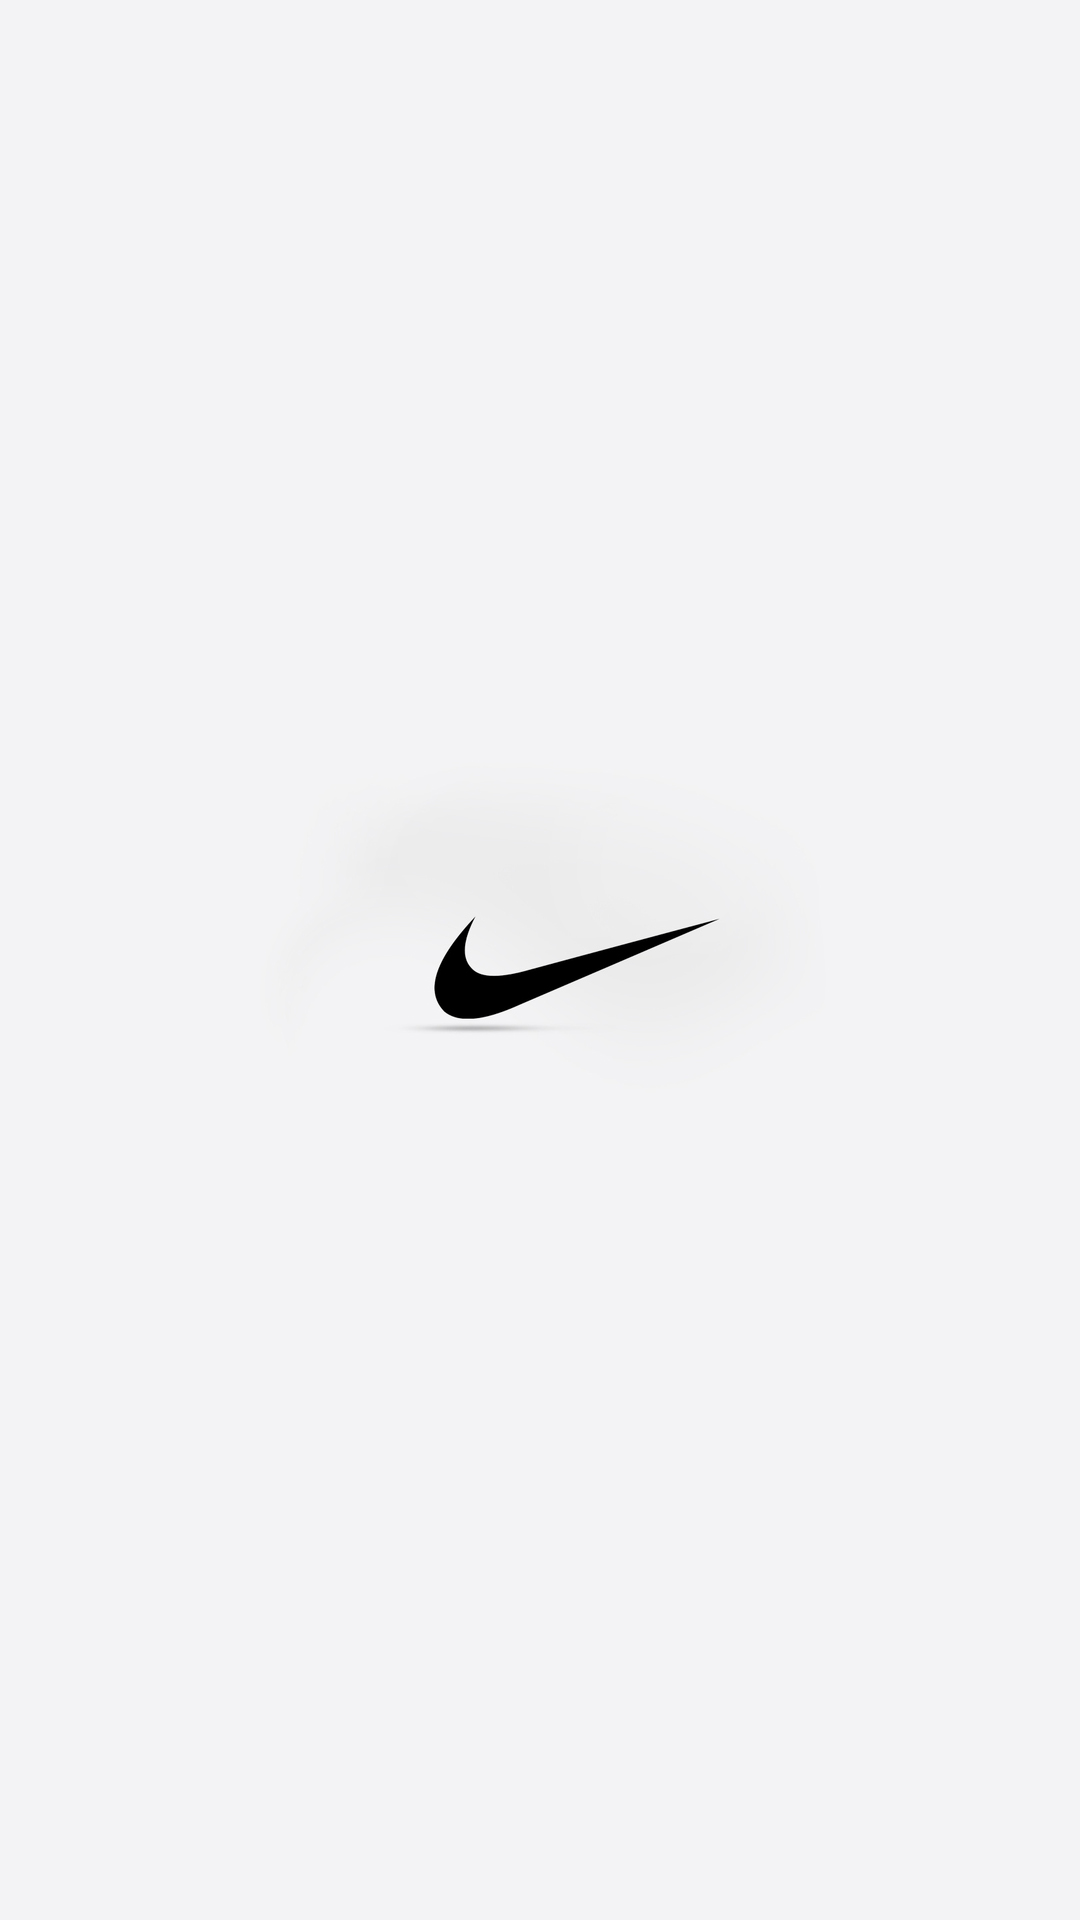 Nike Black And White Logo Wallpaper